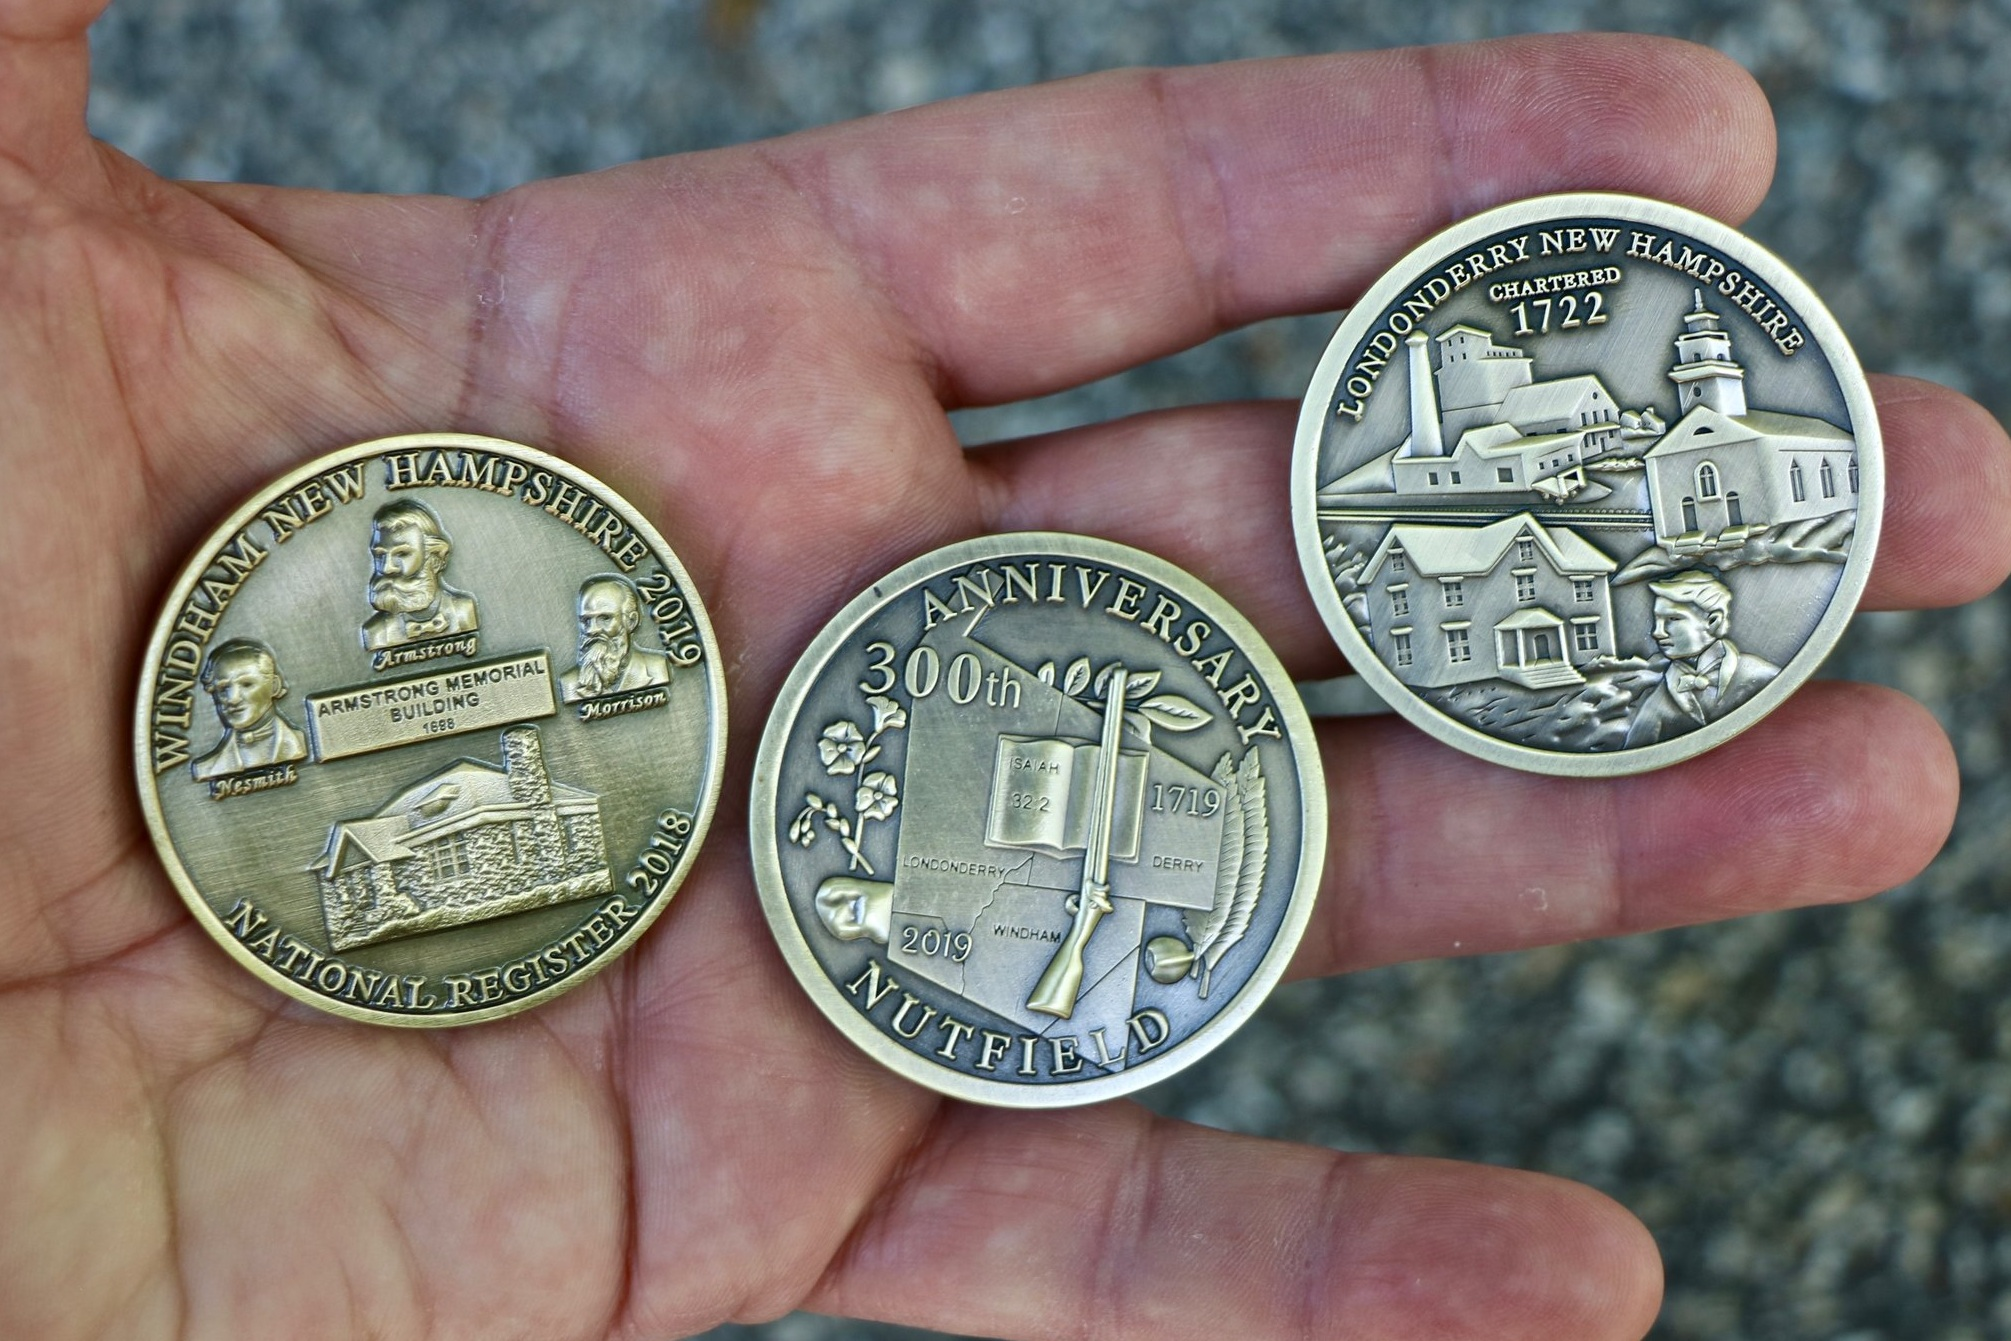 Windham and Londonderry 300th coins will be available at Londonderry Old Home Day. (A Derry coin is coming soon.)